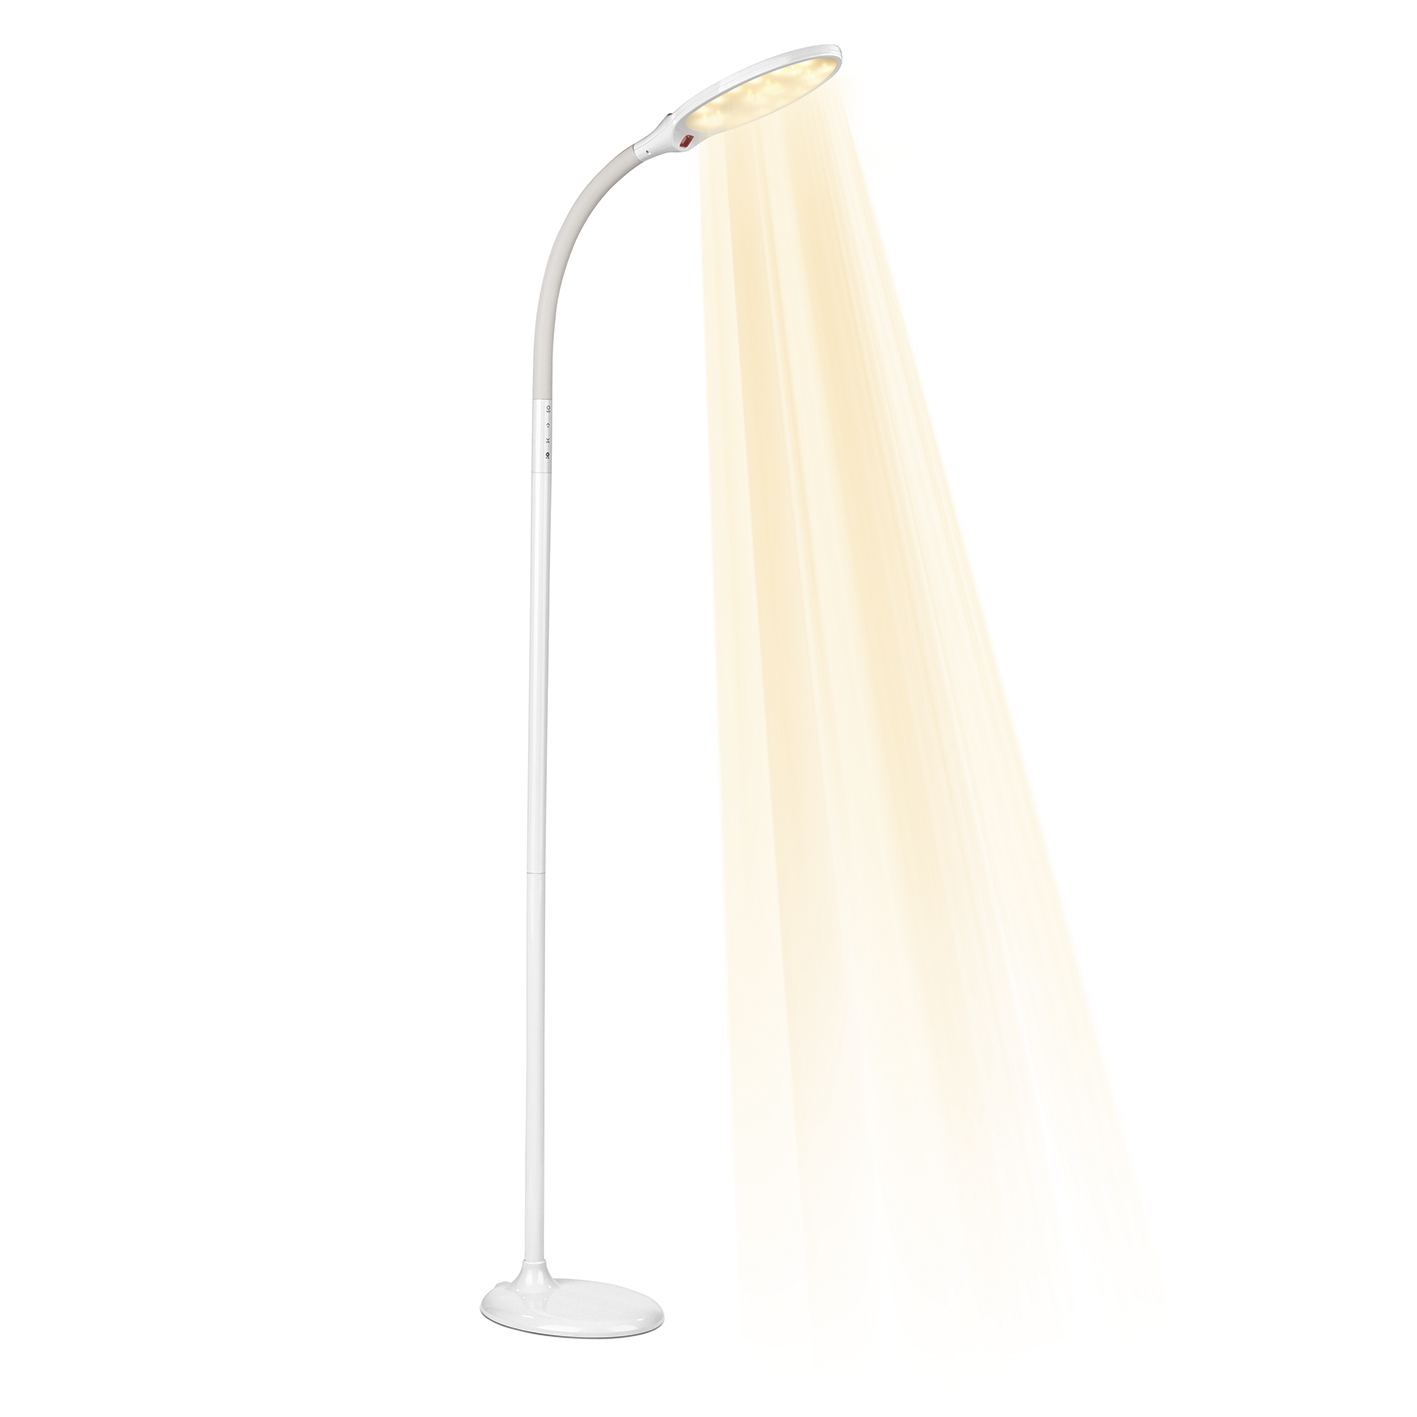 daylight tageslicht standleuchte led color stand lampe